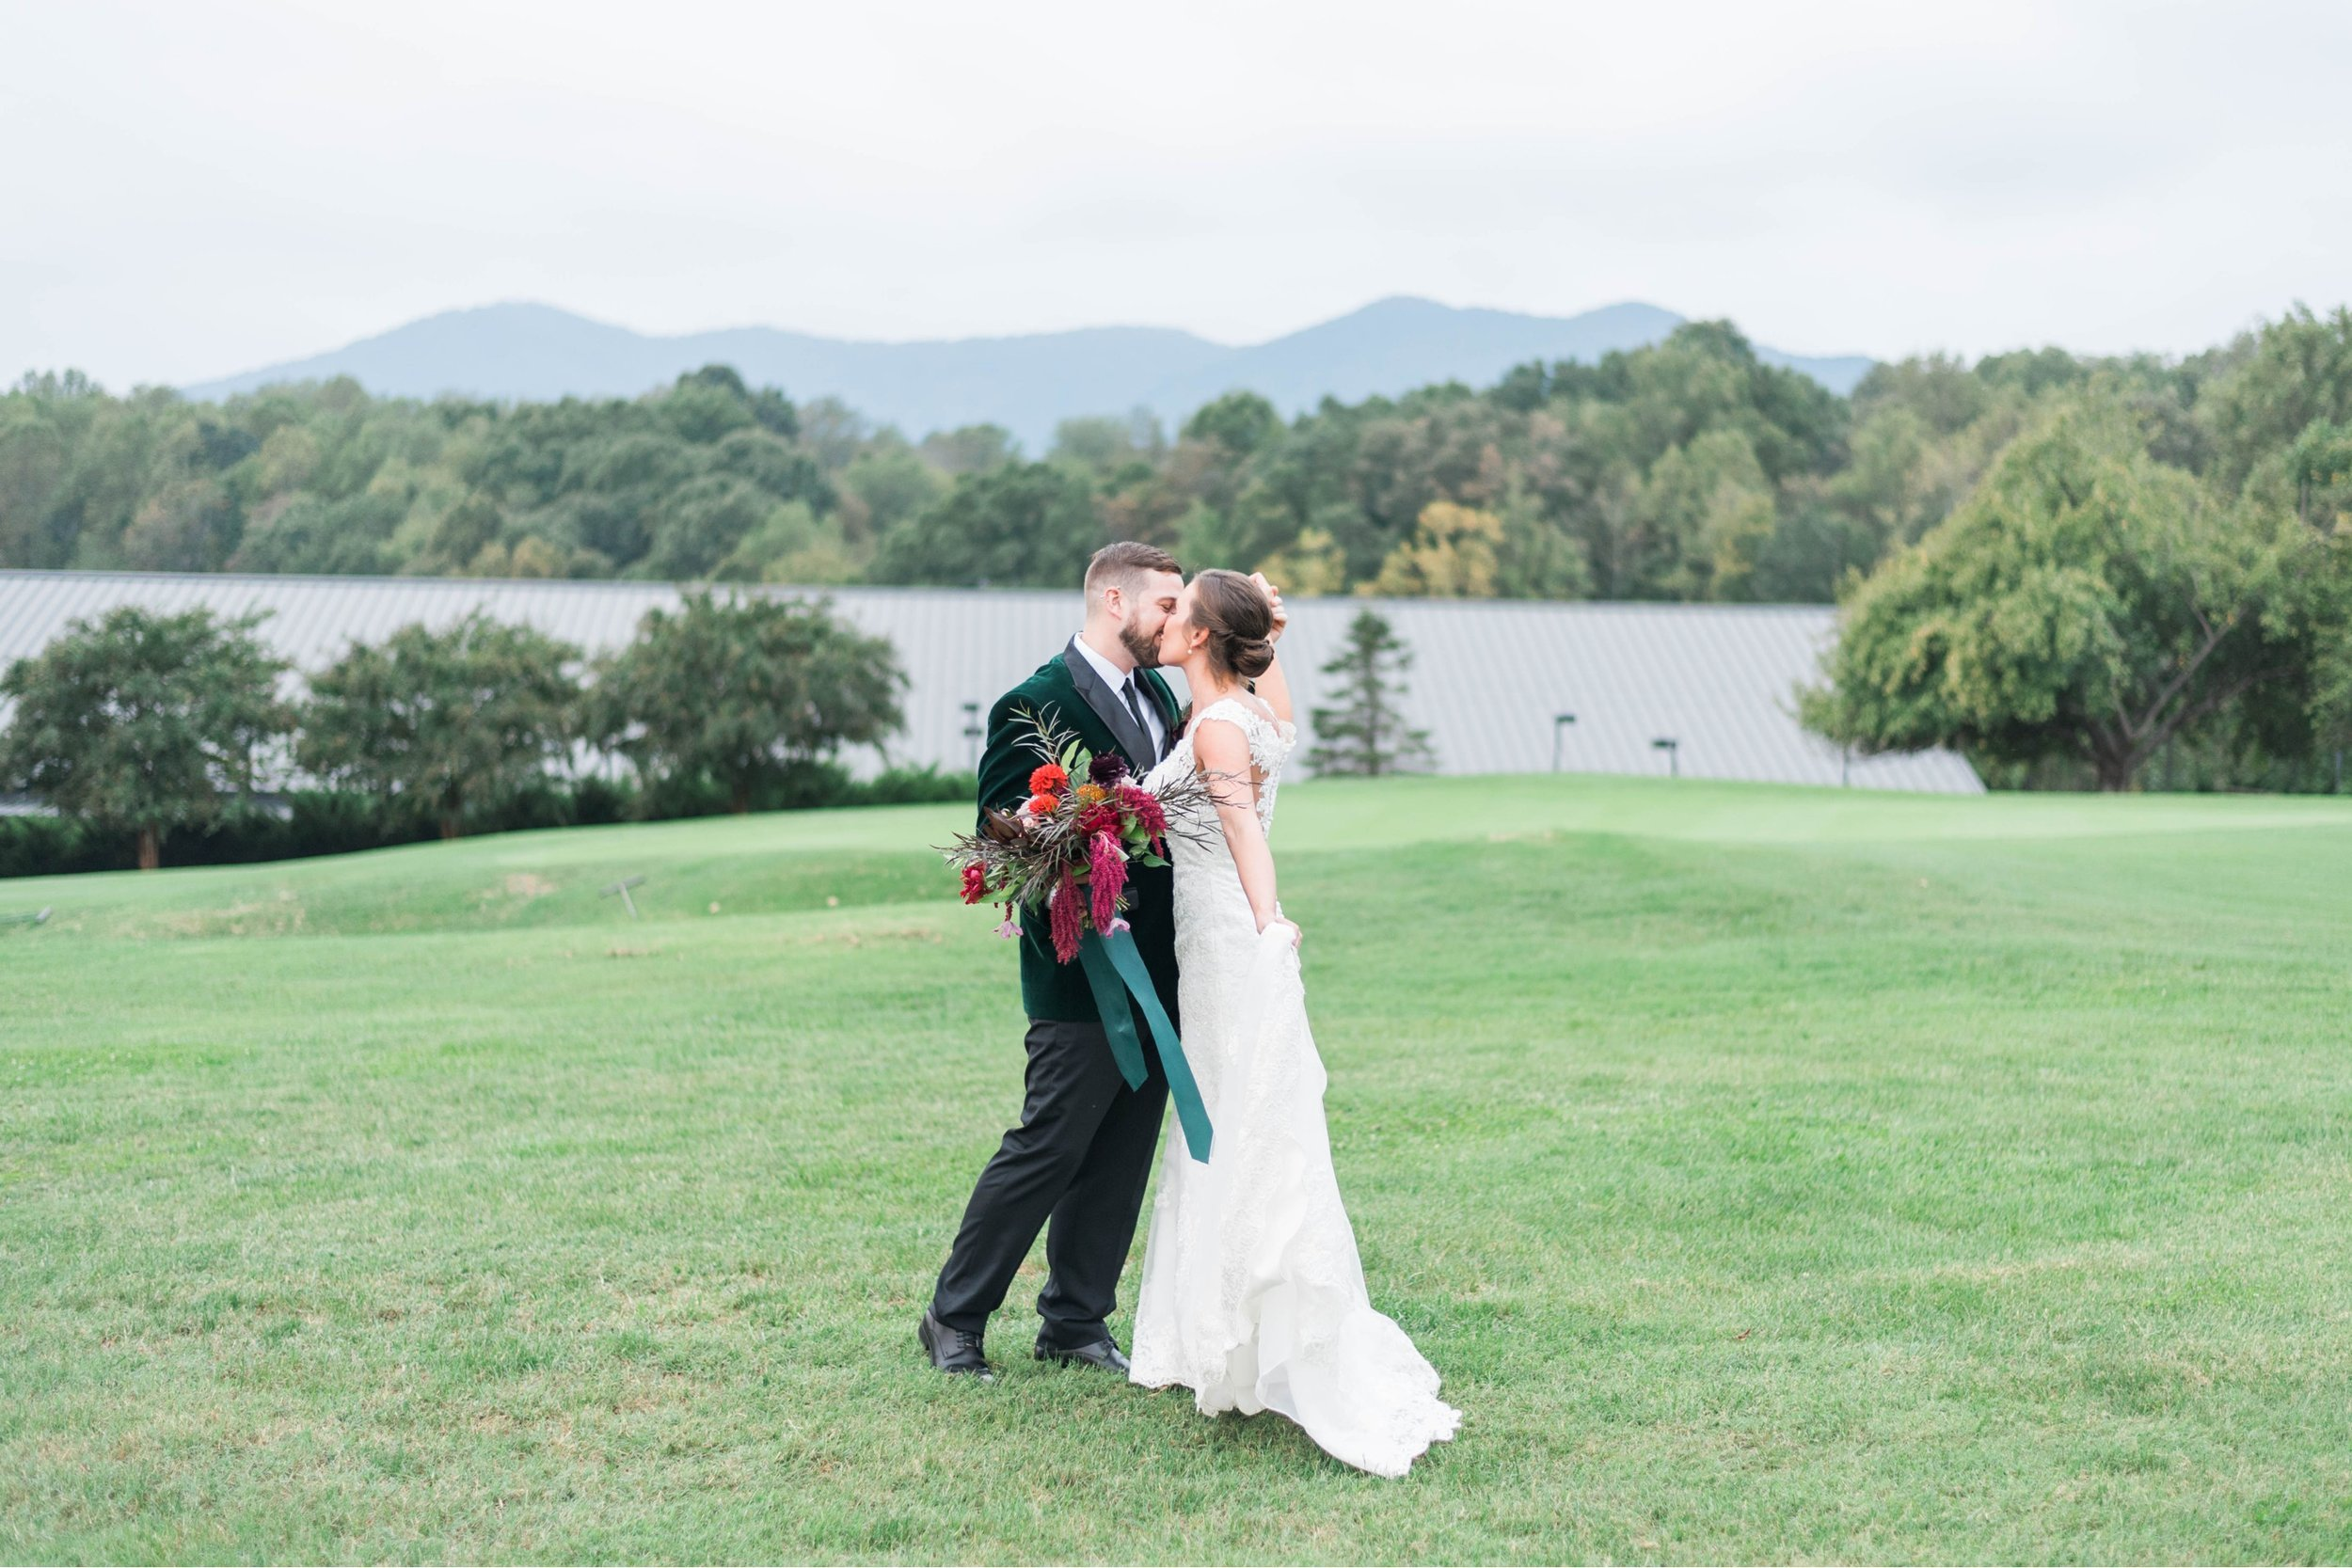 Gordan+Lauren_BoonsboroCountryClubWedding_Virginiaweddingphotographer_LynchburgVi 35.jpg